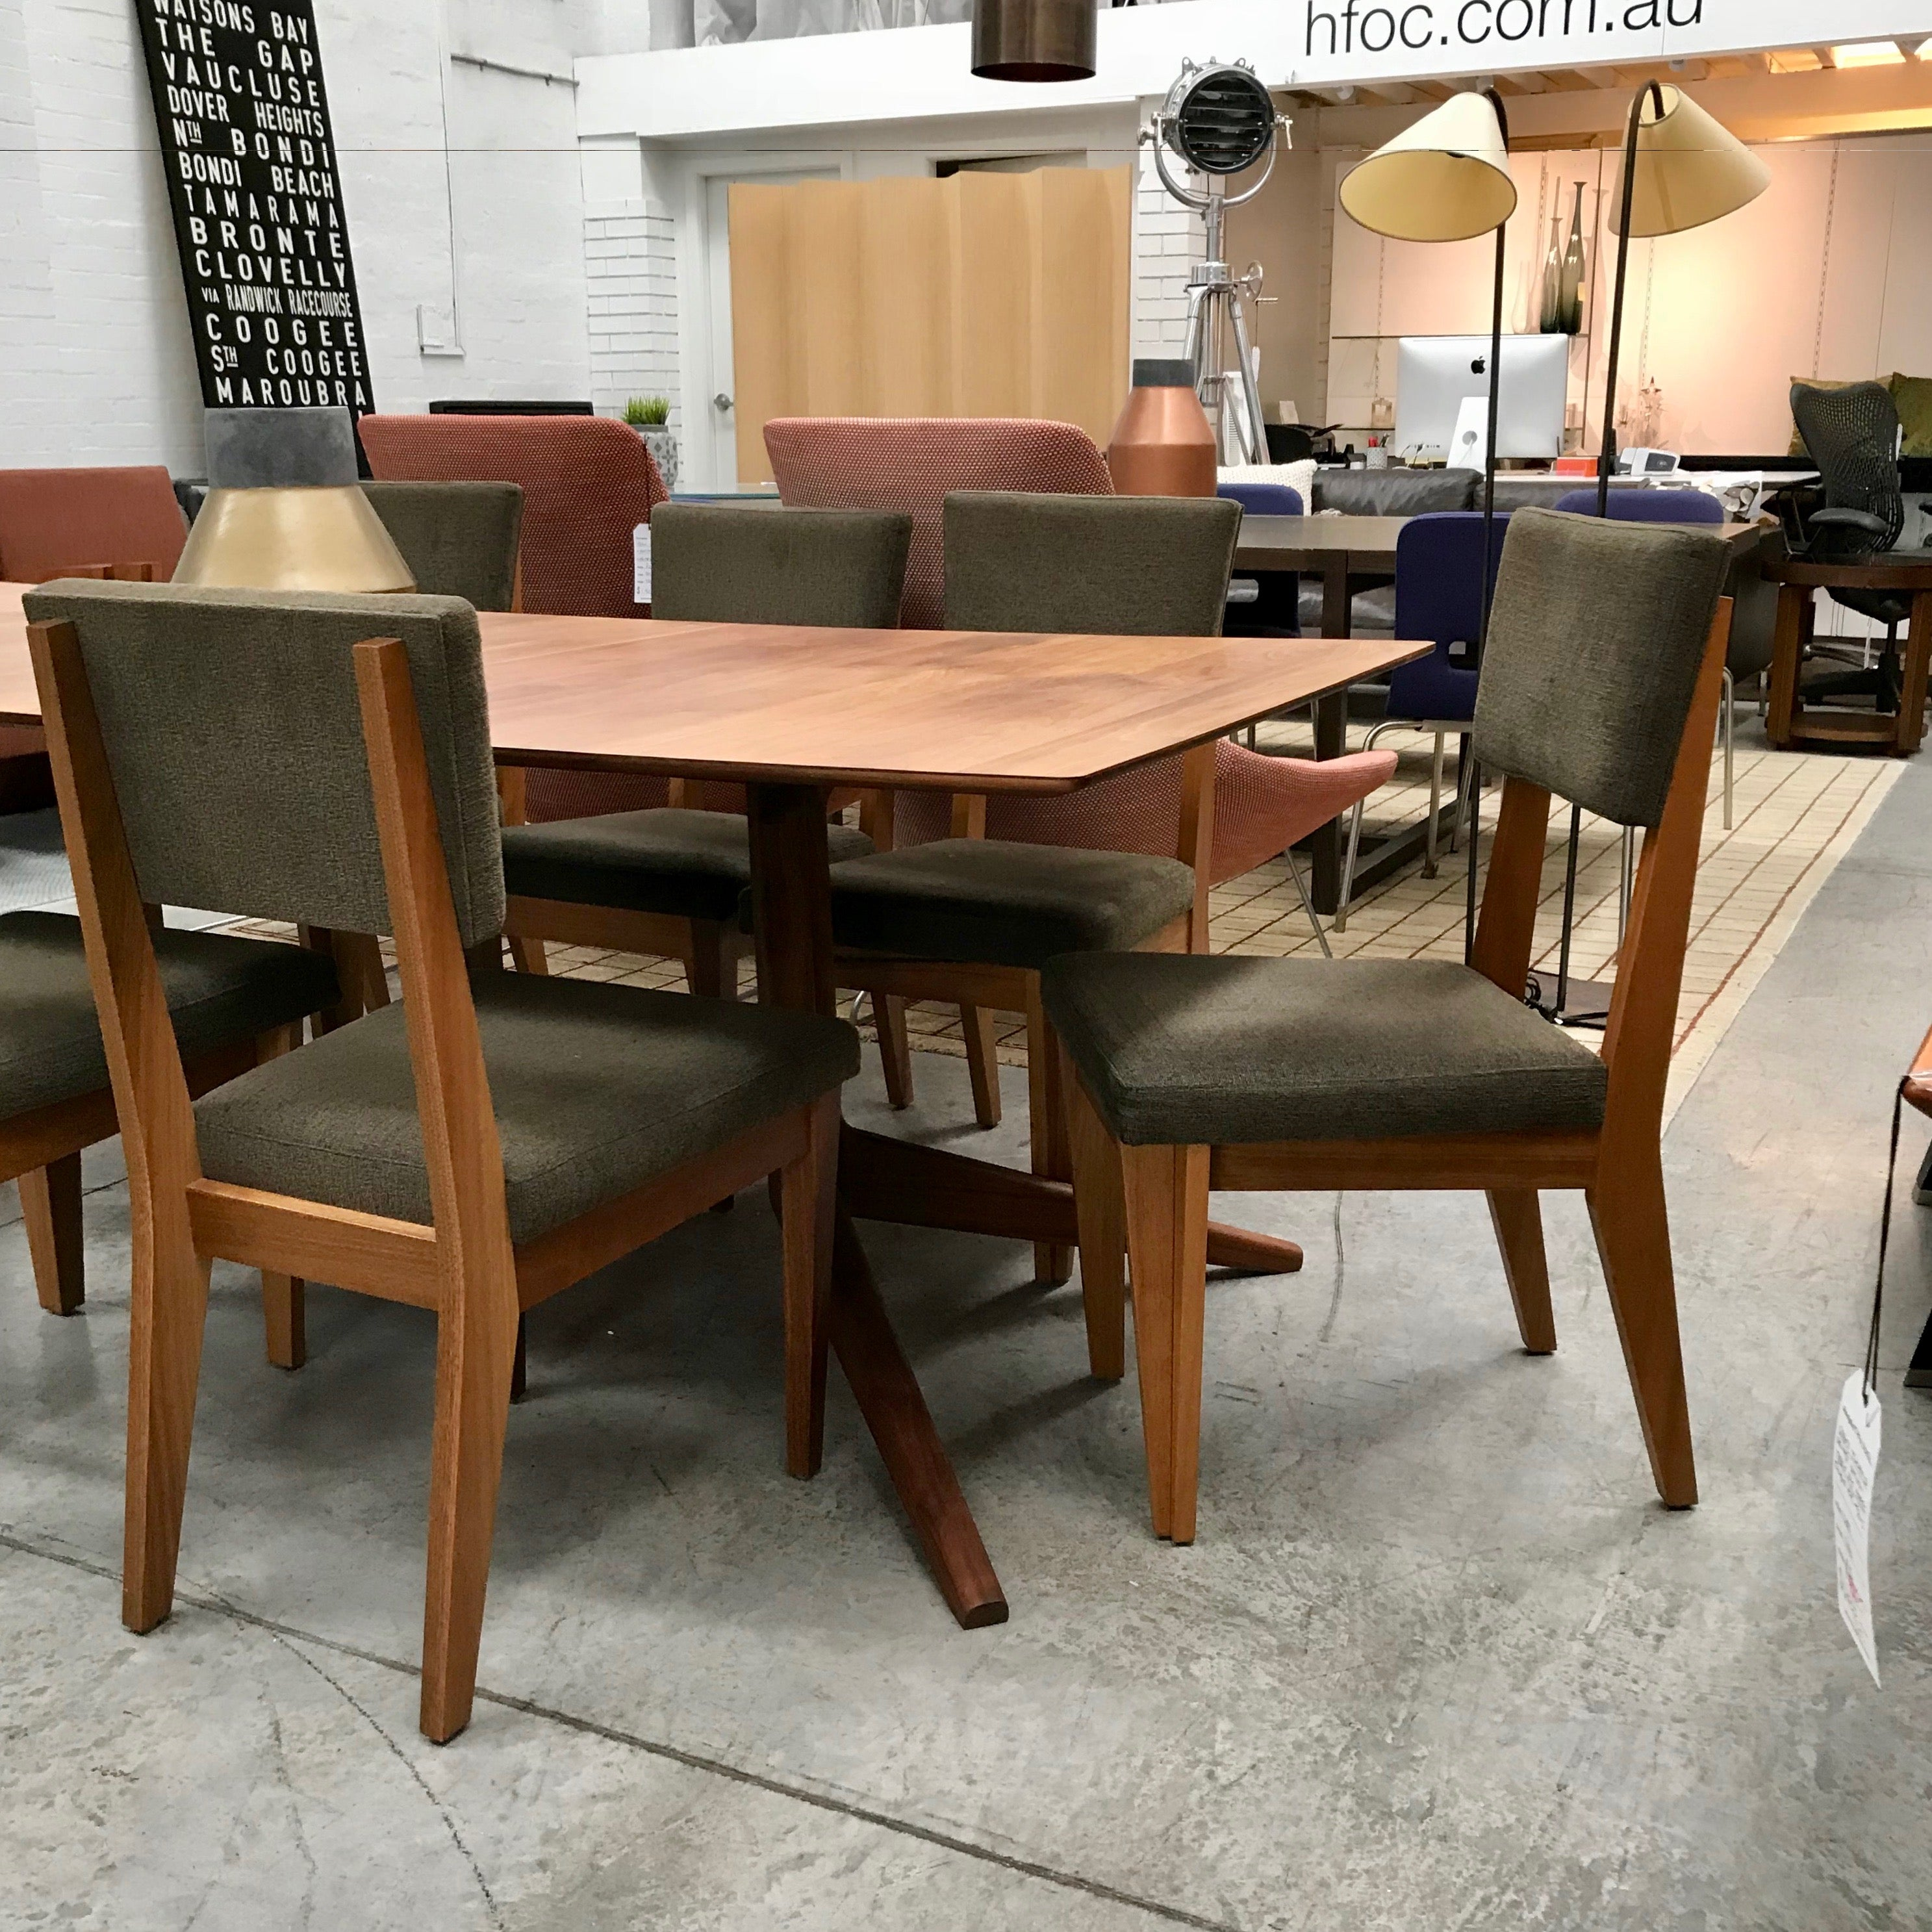 Set of SIX Taper Dining Chairs by Planet Furniture